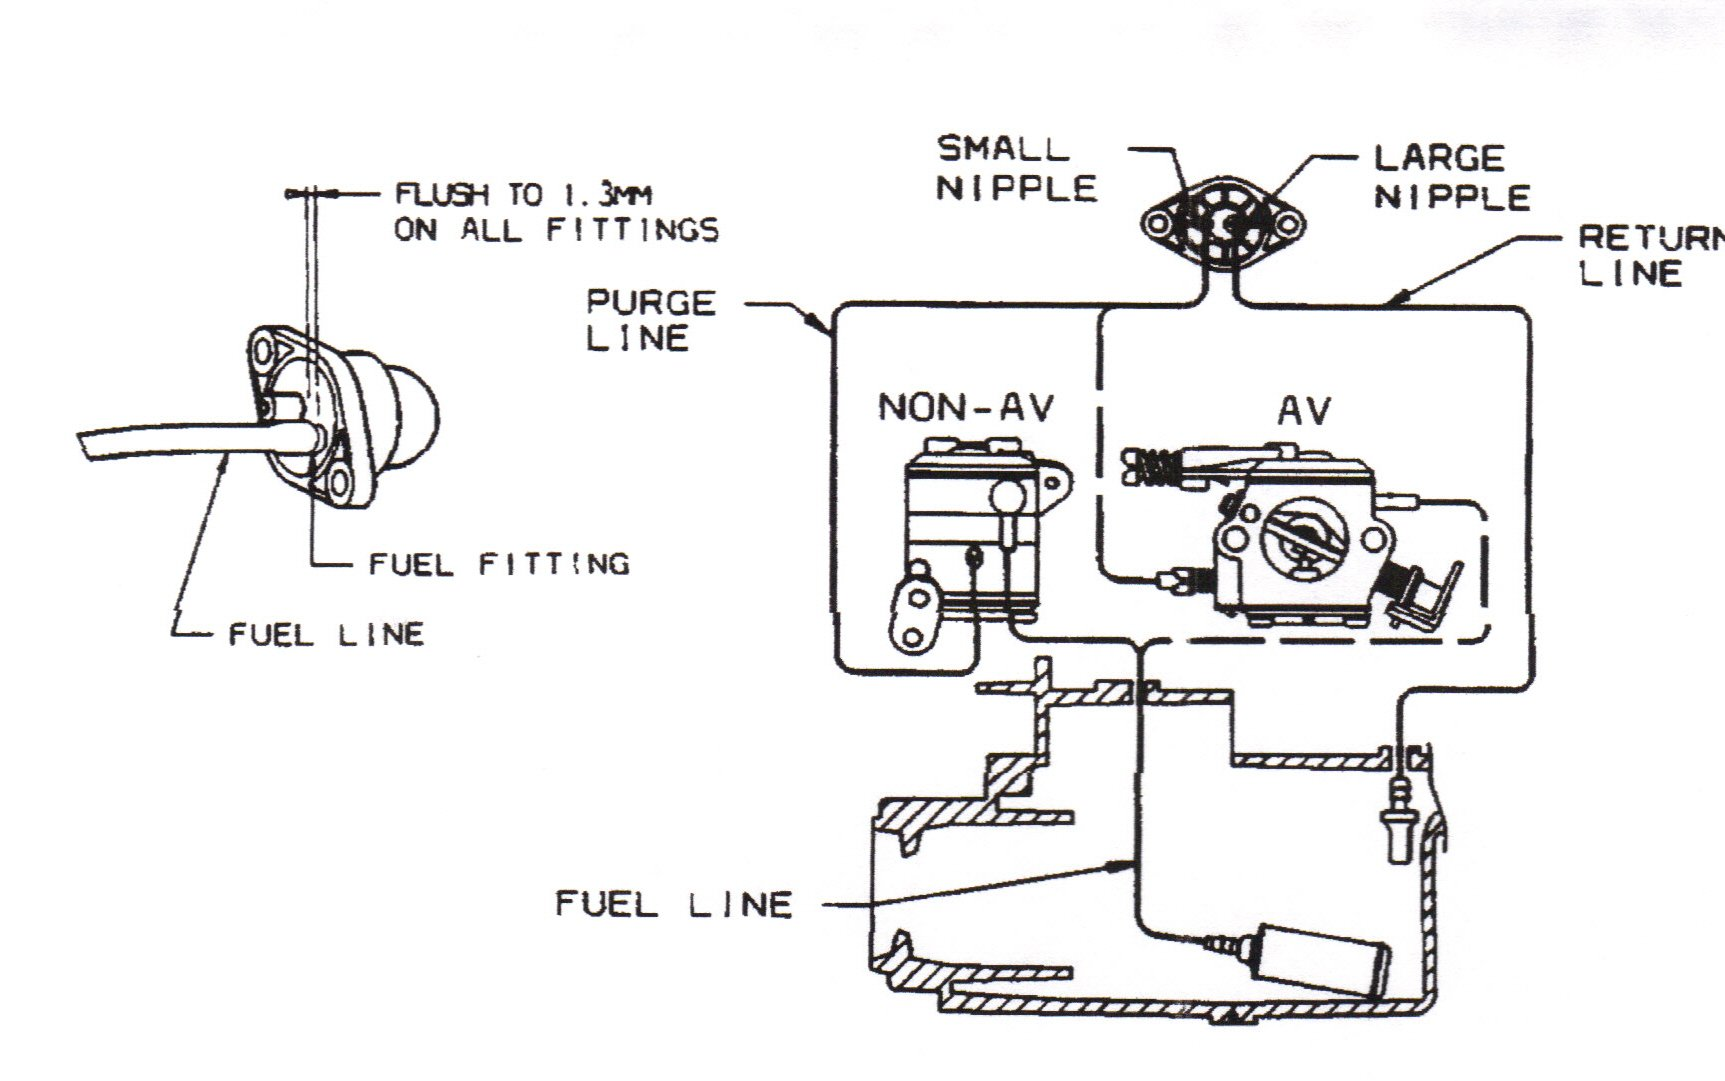 need fuel line routing for husky 445 chainsaw rh justanswer com fuel line diagram craftsman chainsaw fuel line diagram craftsman weed wacker